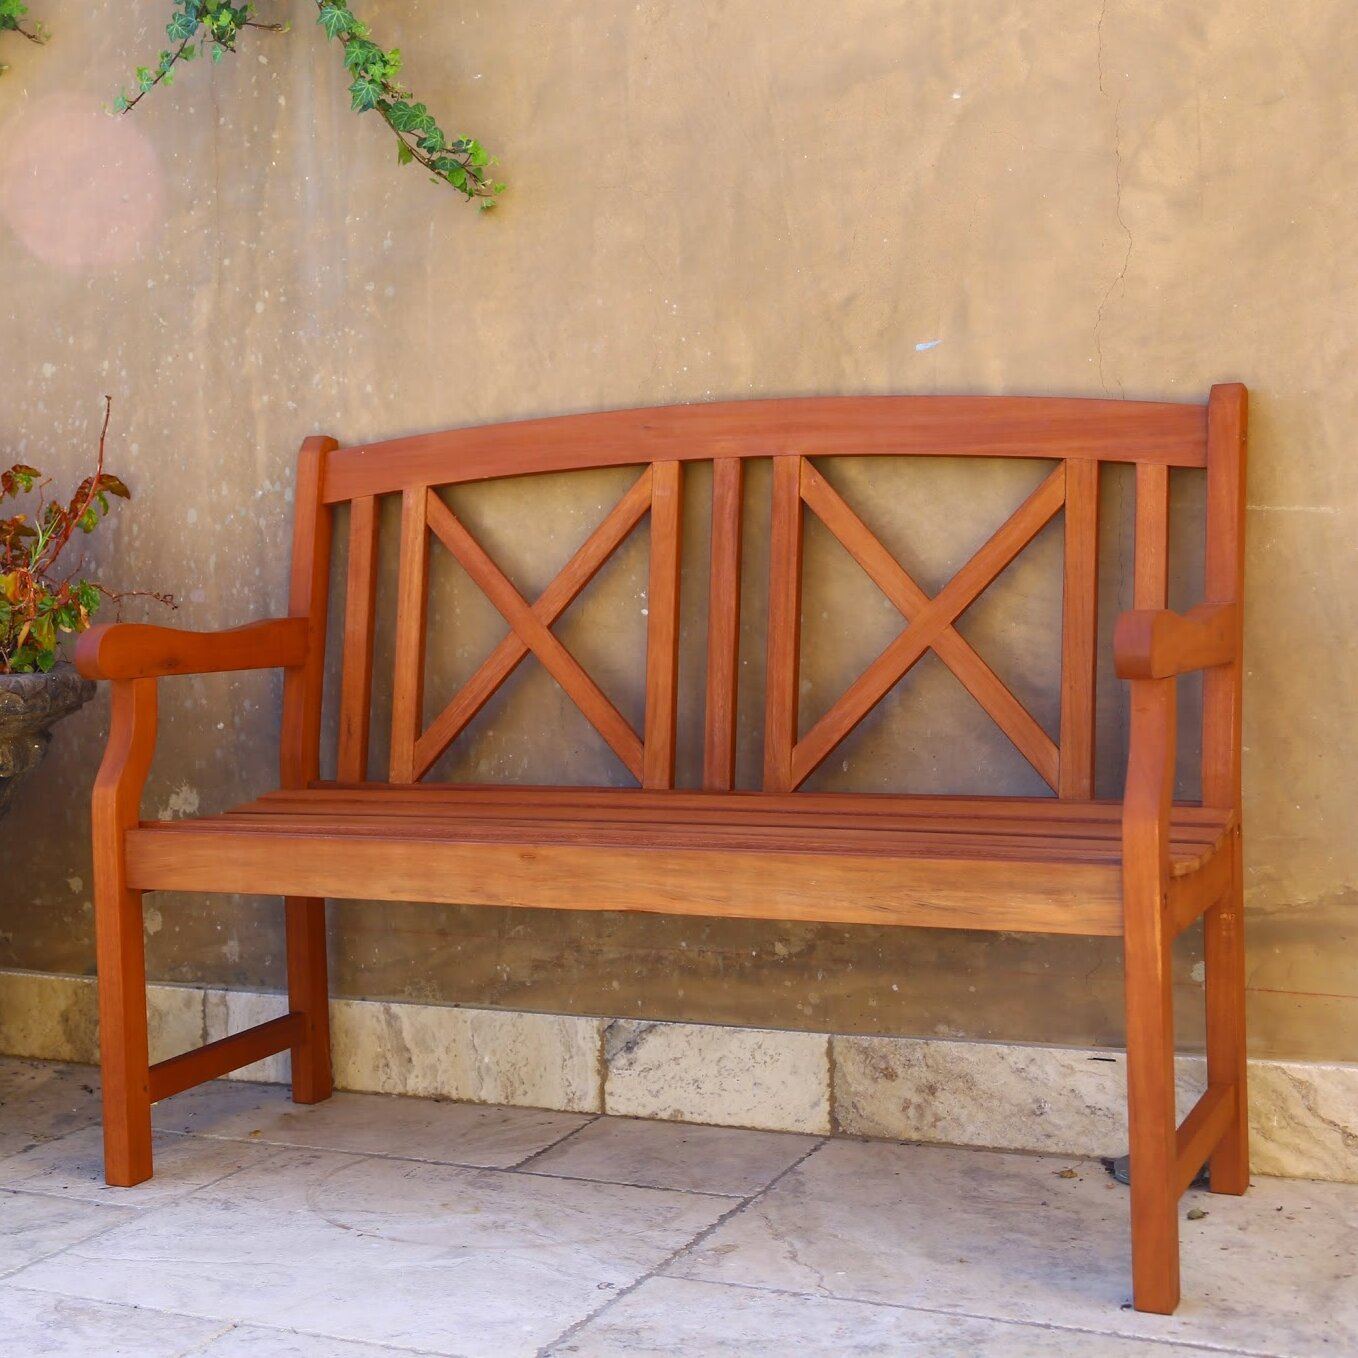 Vifah Contemporary Outdoor Wood Garden Bench Reviews